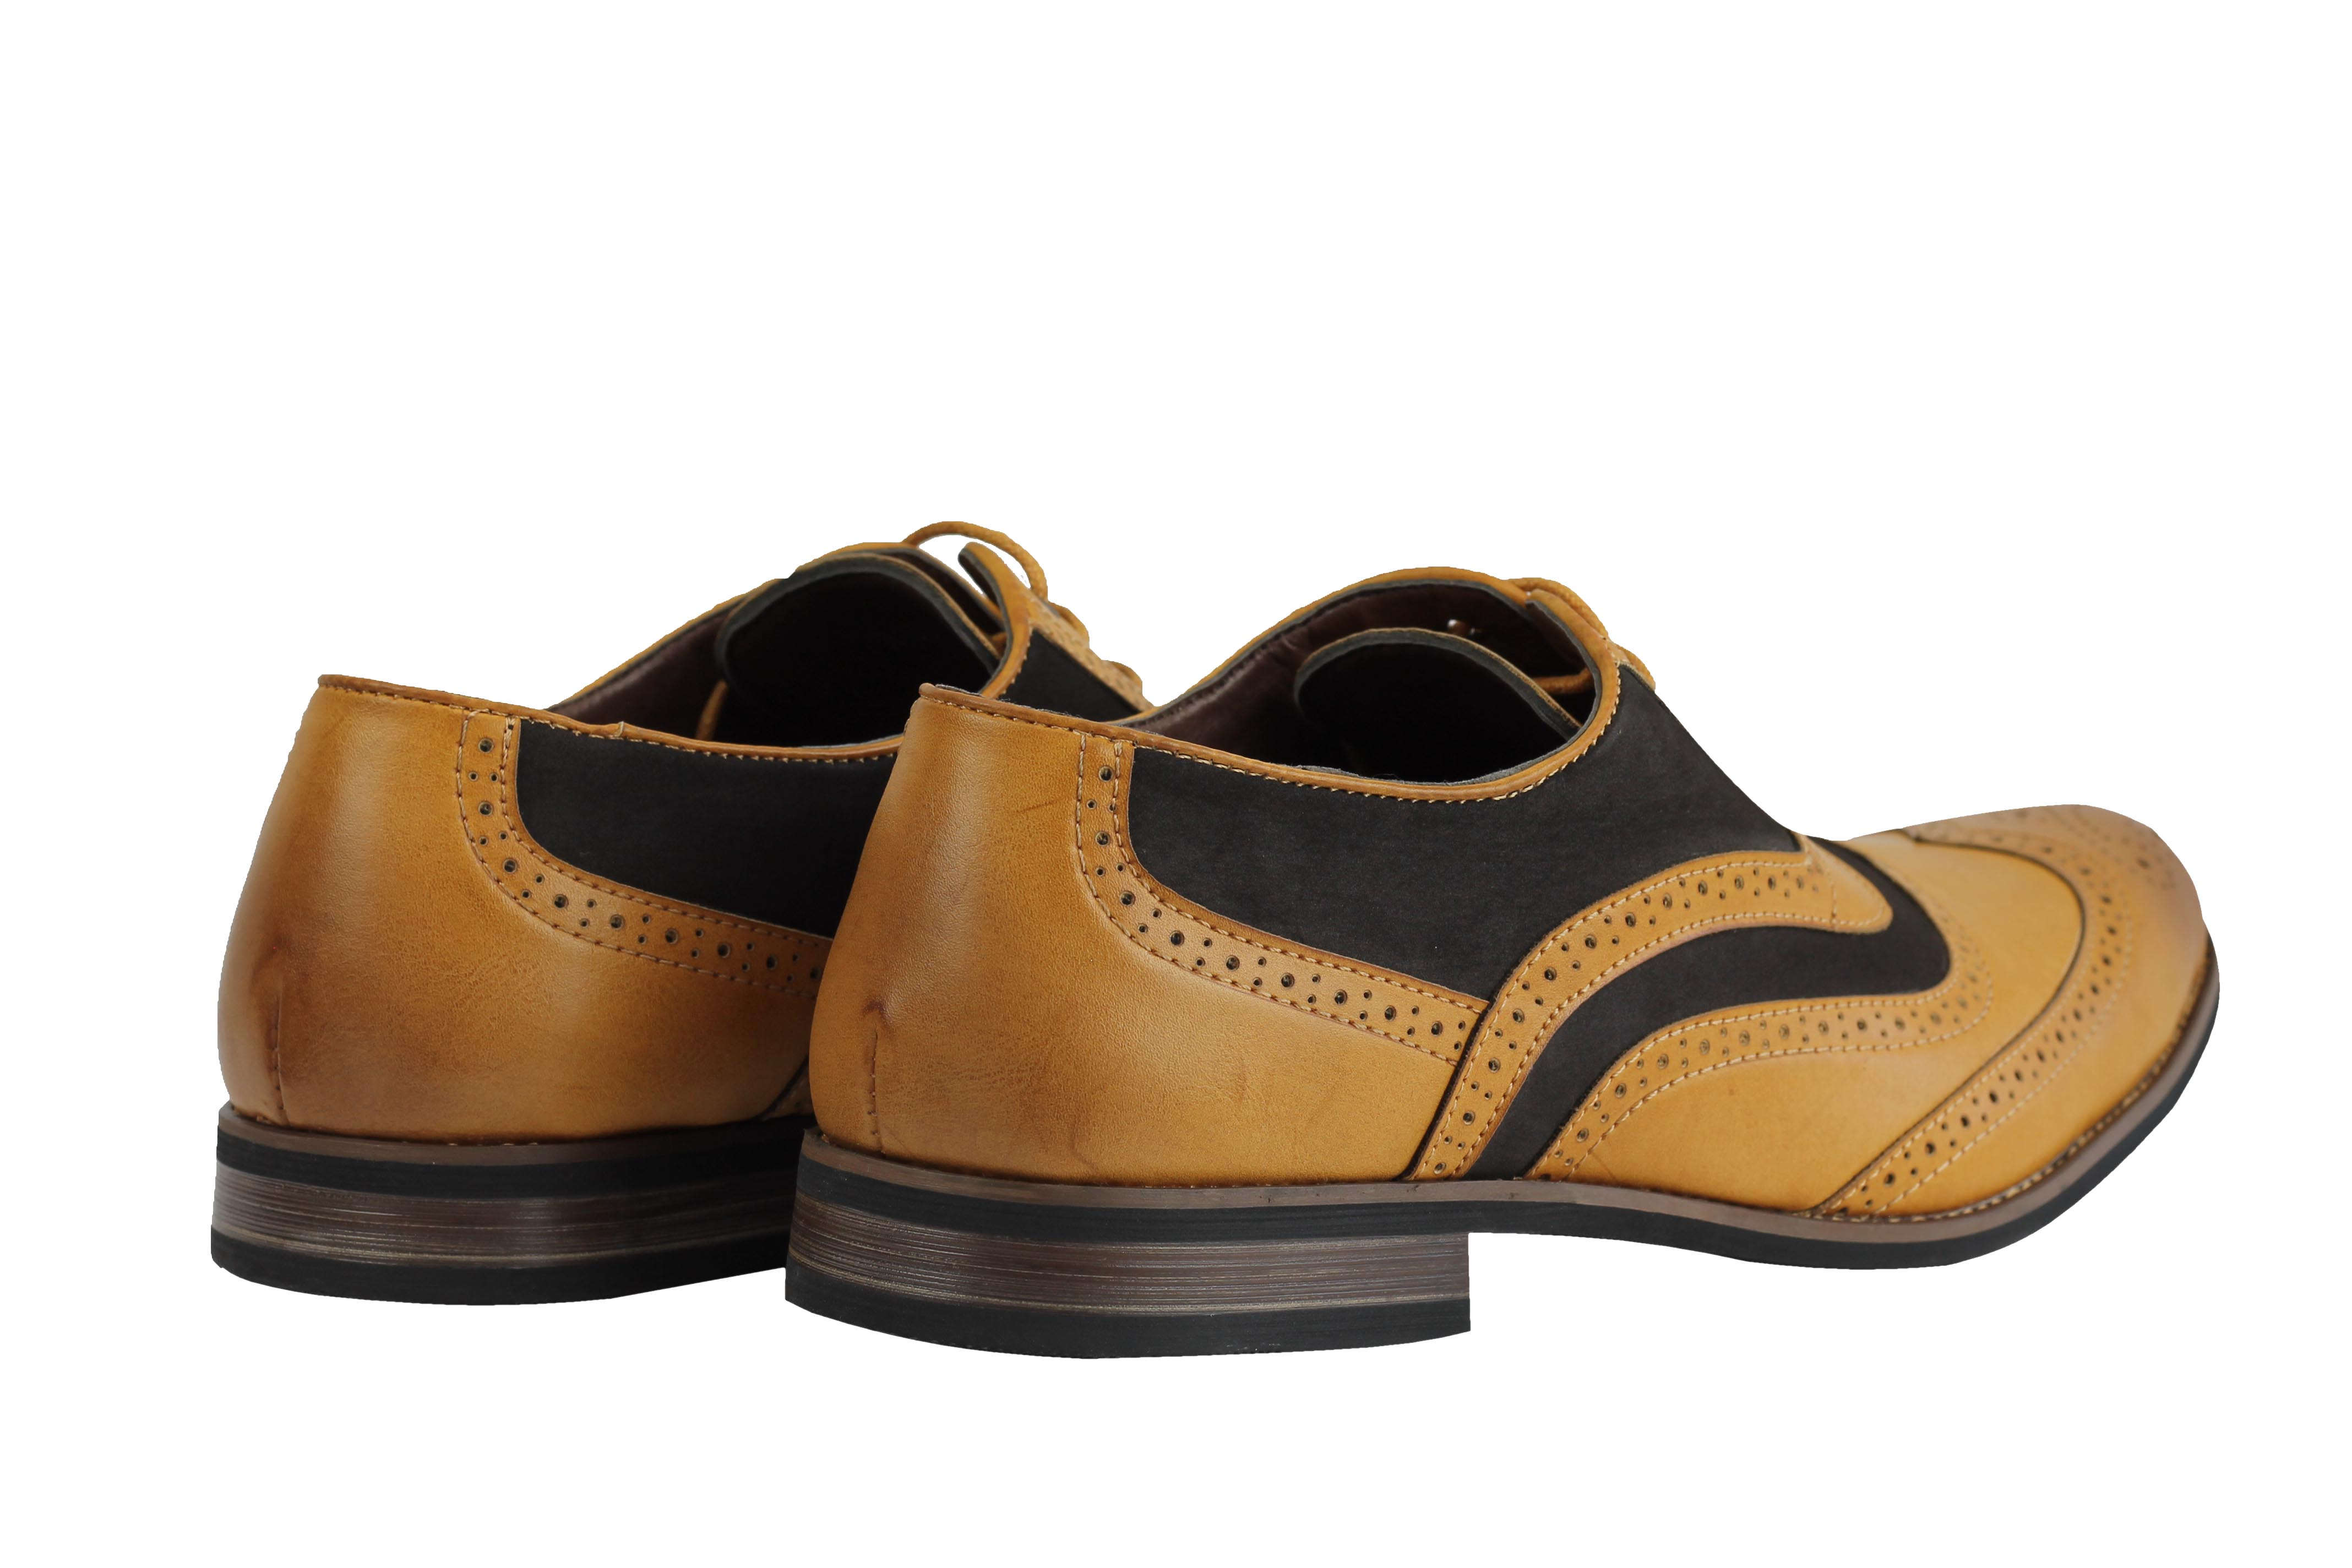 Mens-Retro-Vintage-Wing-Tip-Leather-Brogue-Smart-Casual-Office-Shoes-UK-Sizes thumbnail 12